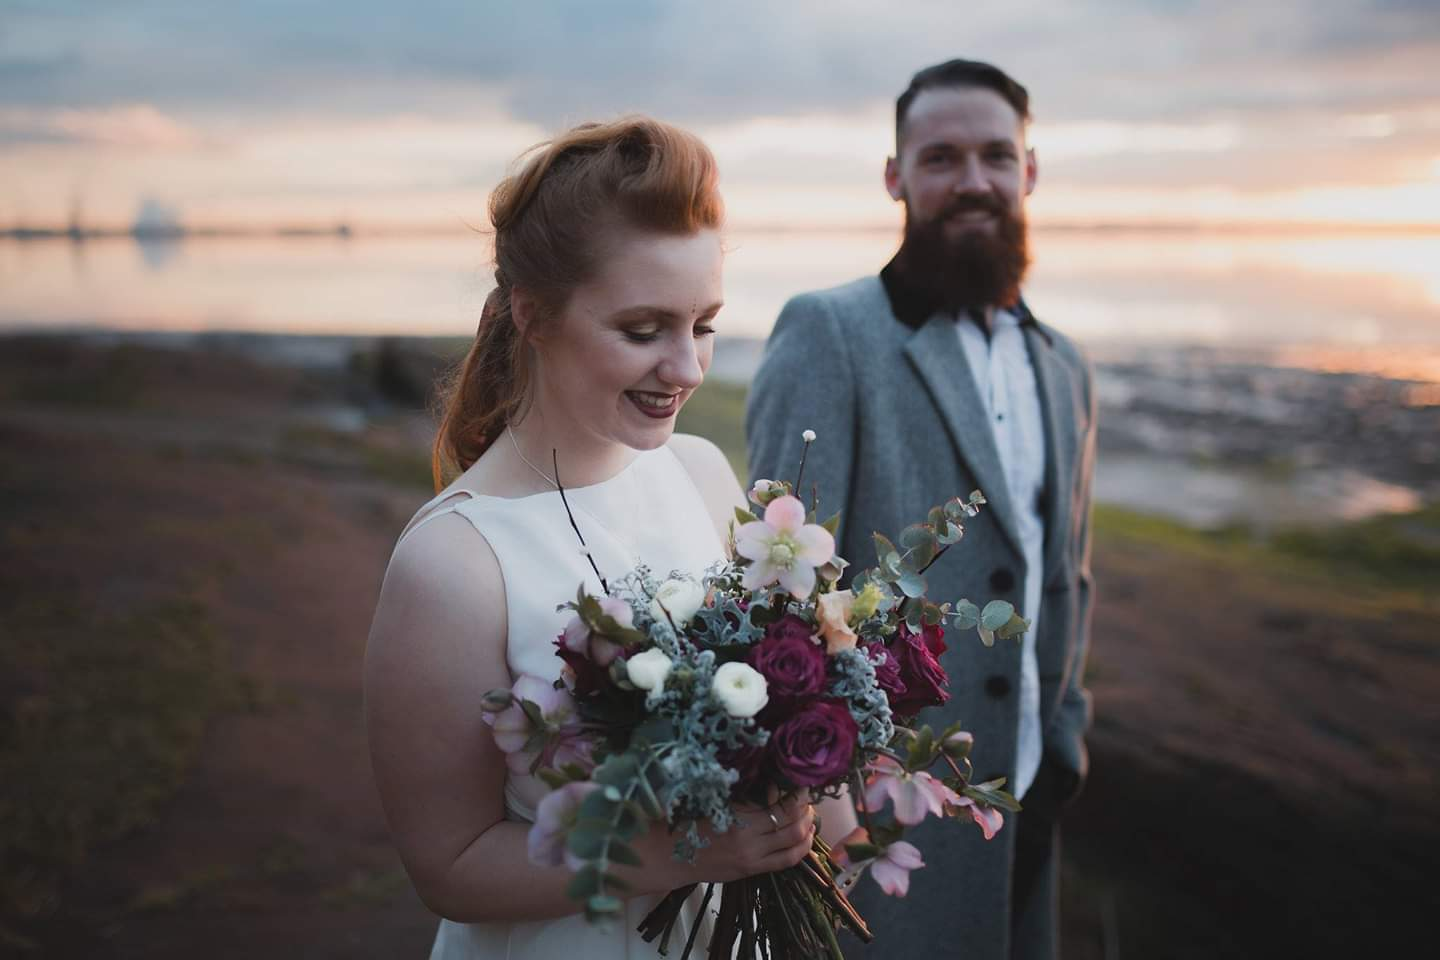 boho bride and groom walking on the beach at sunset in Liverpool